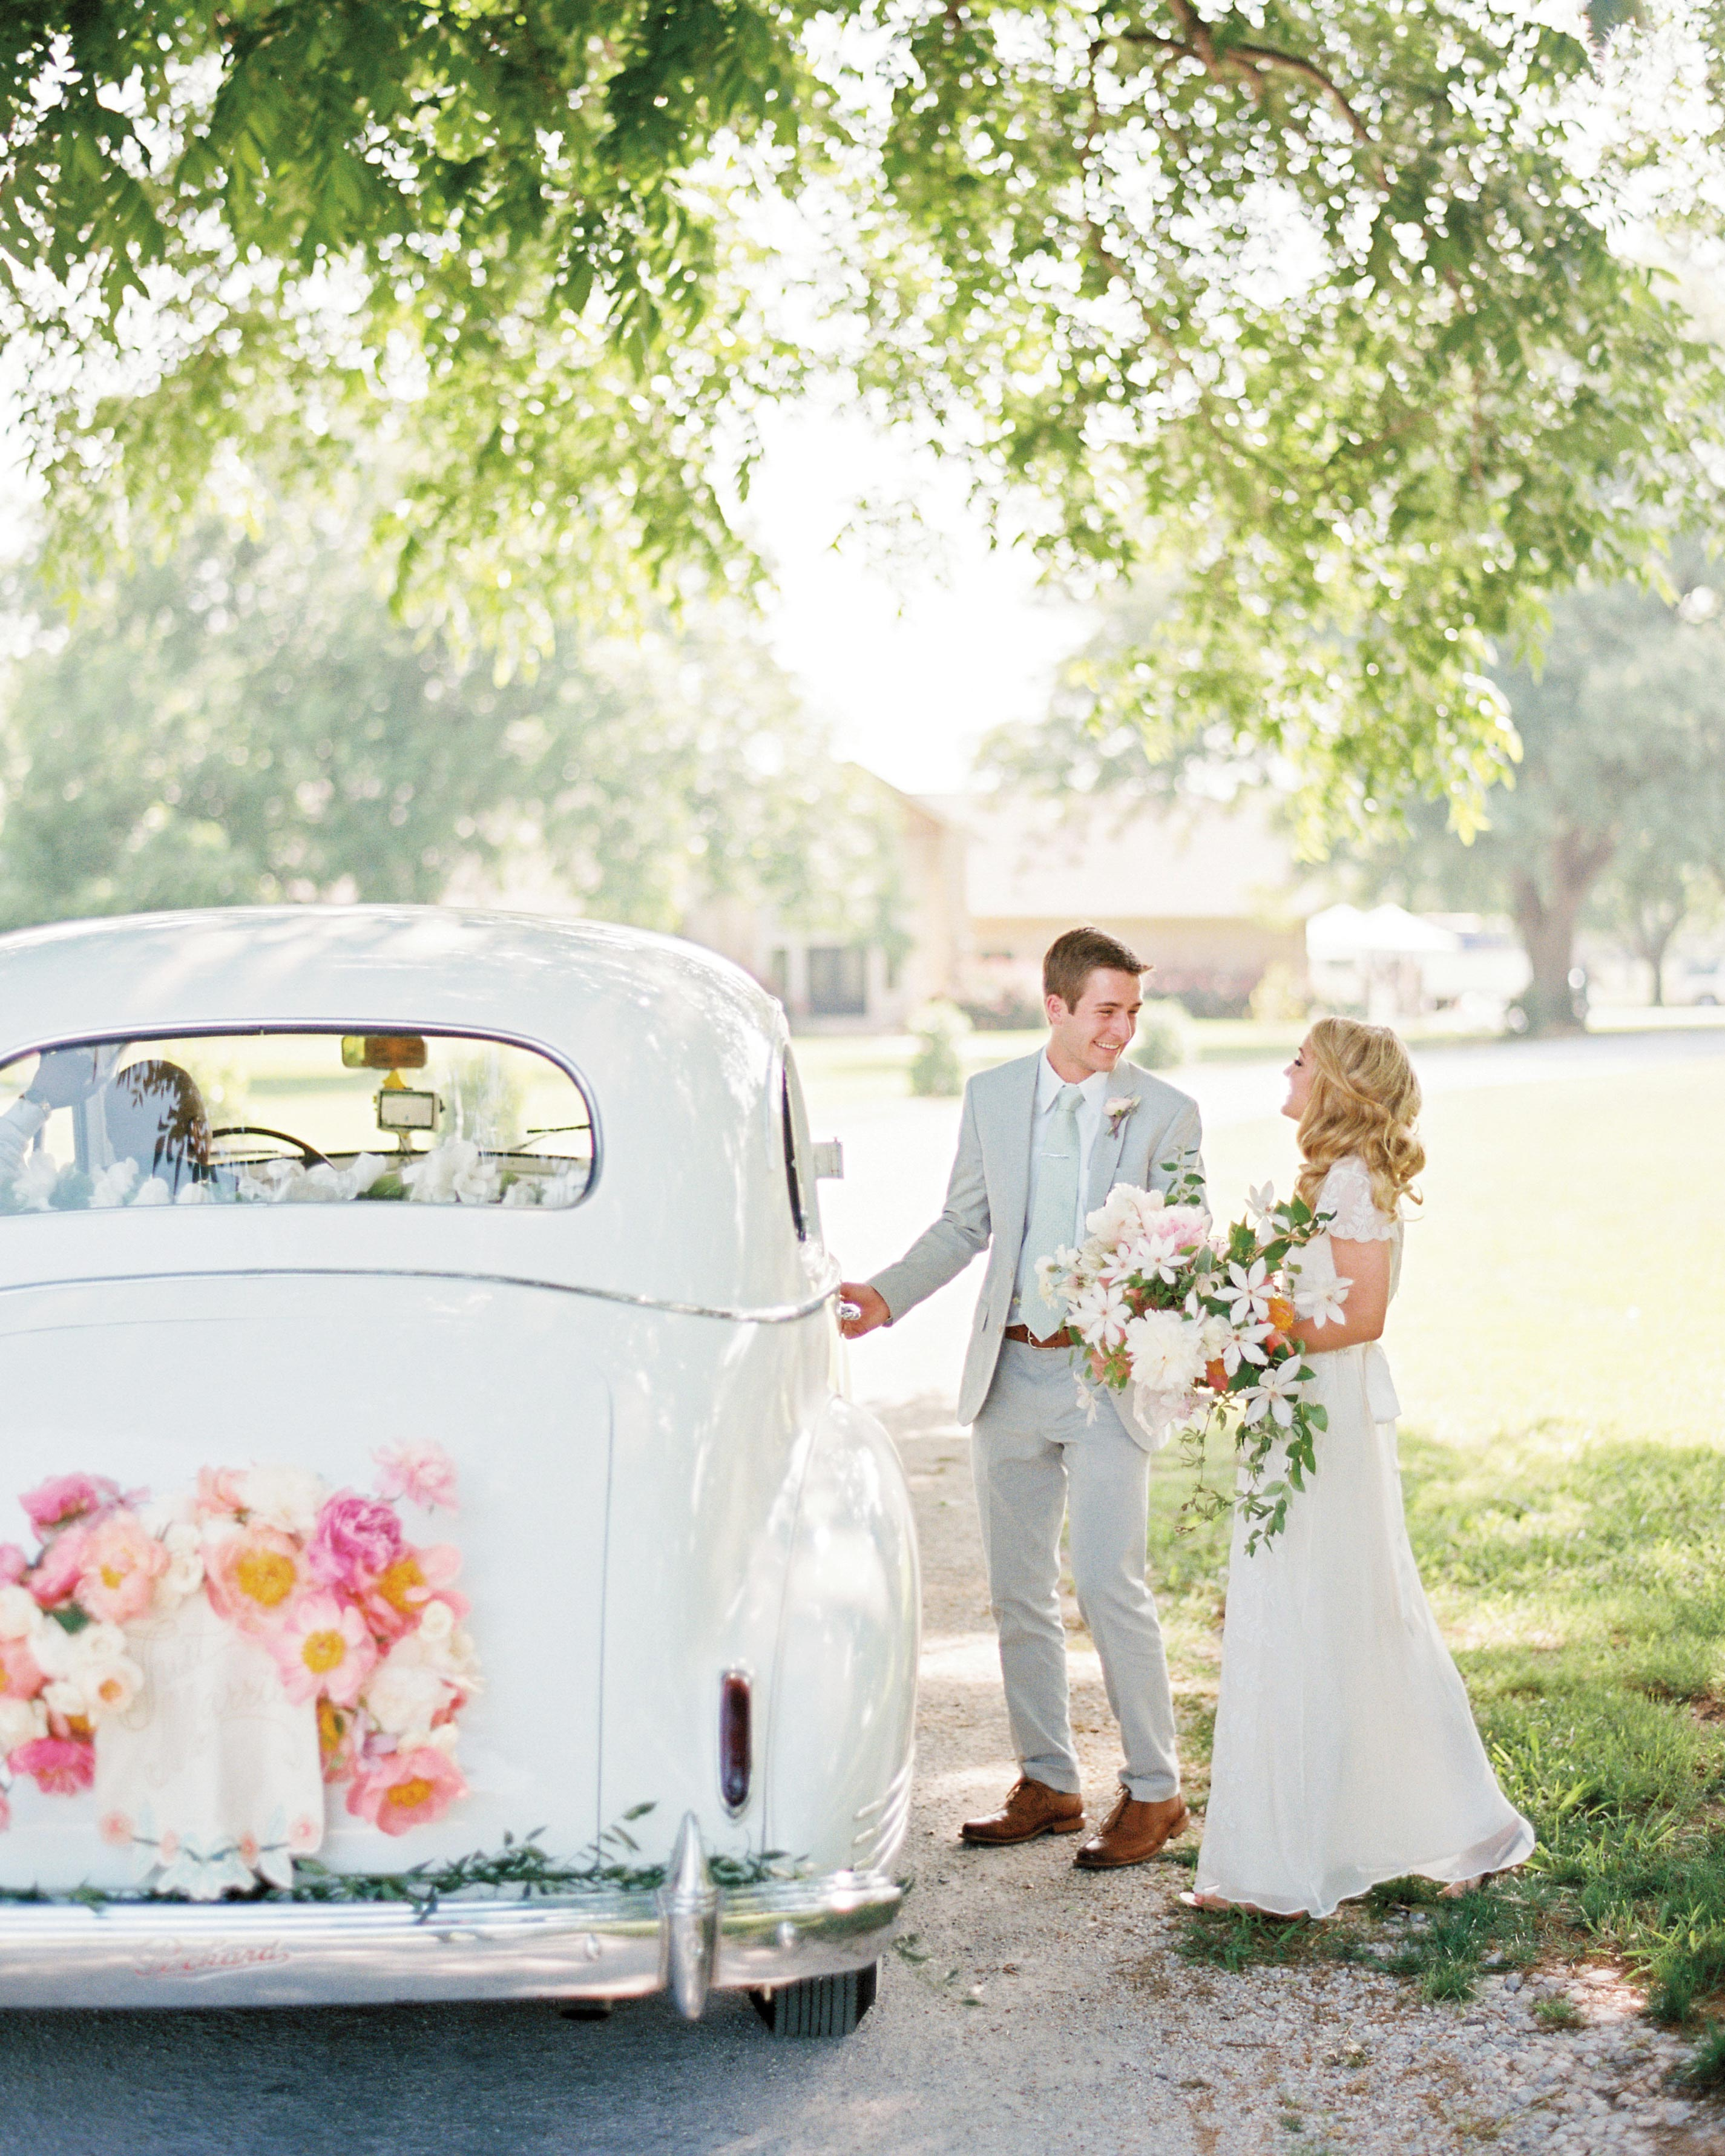 david-tyler-real-wedding-couple-leaving-getaway-car.jpg